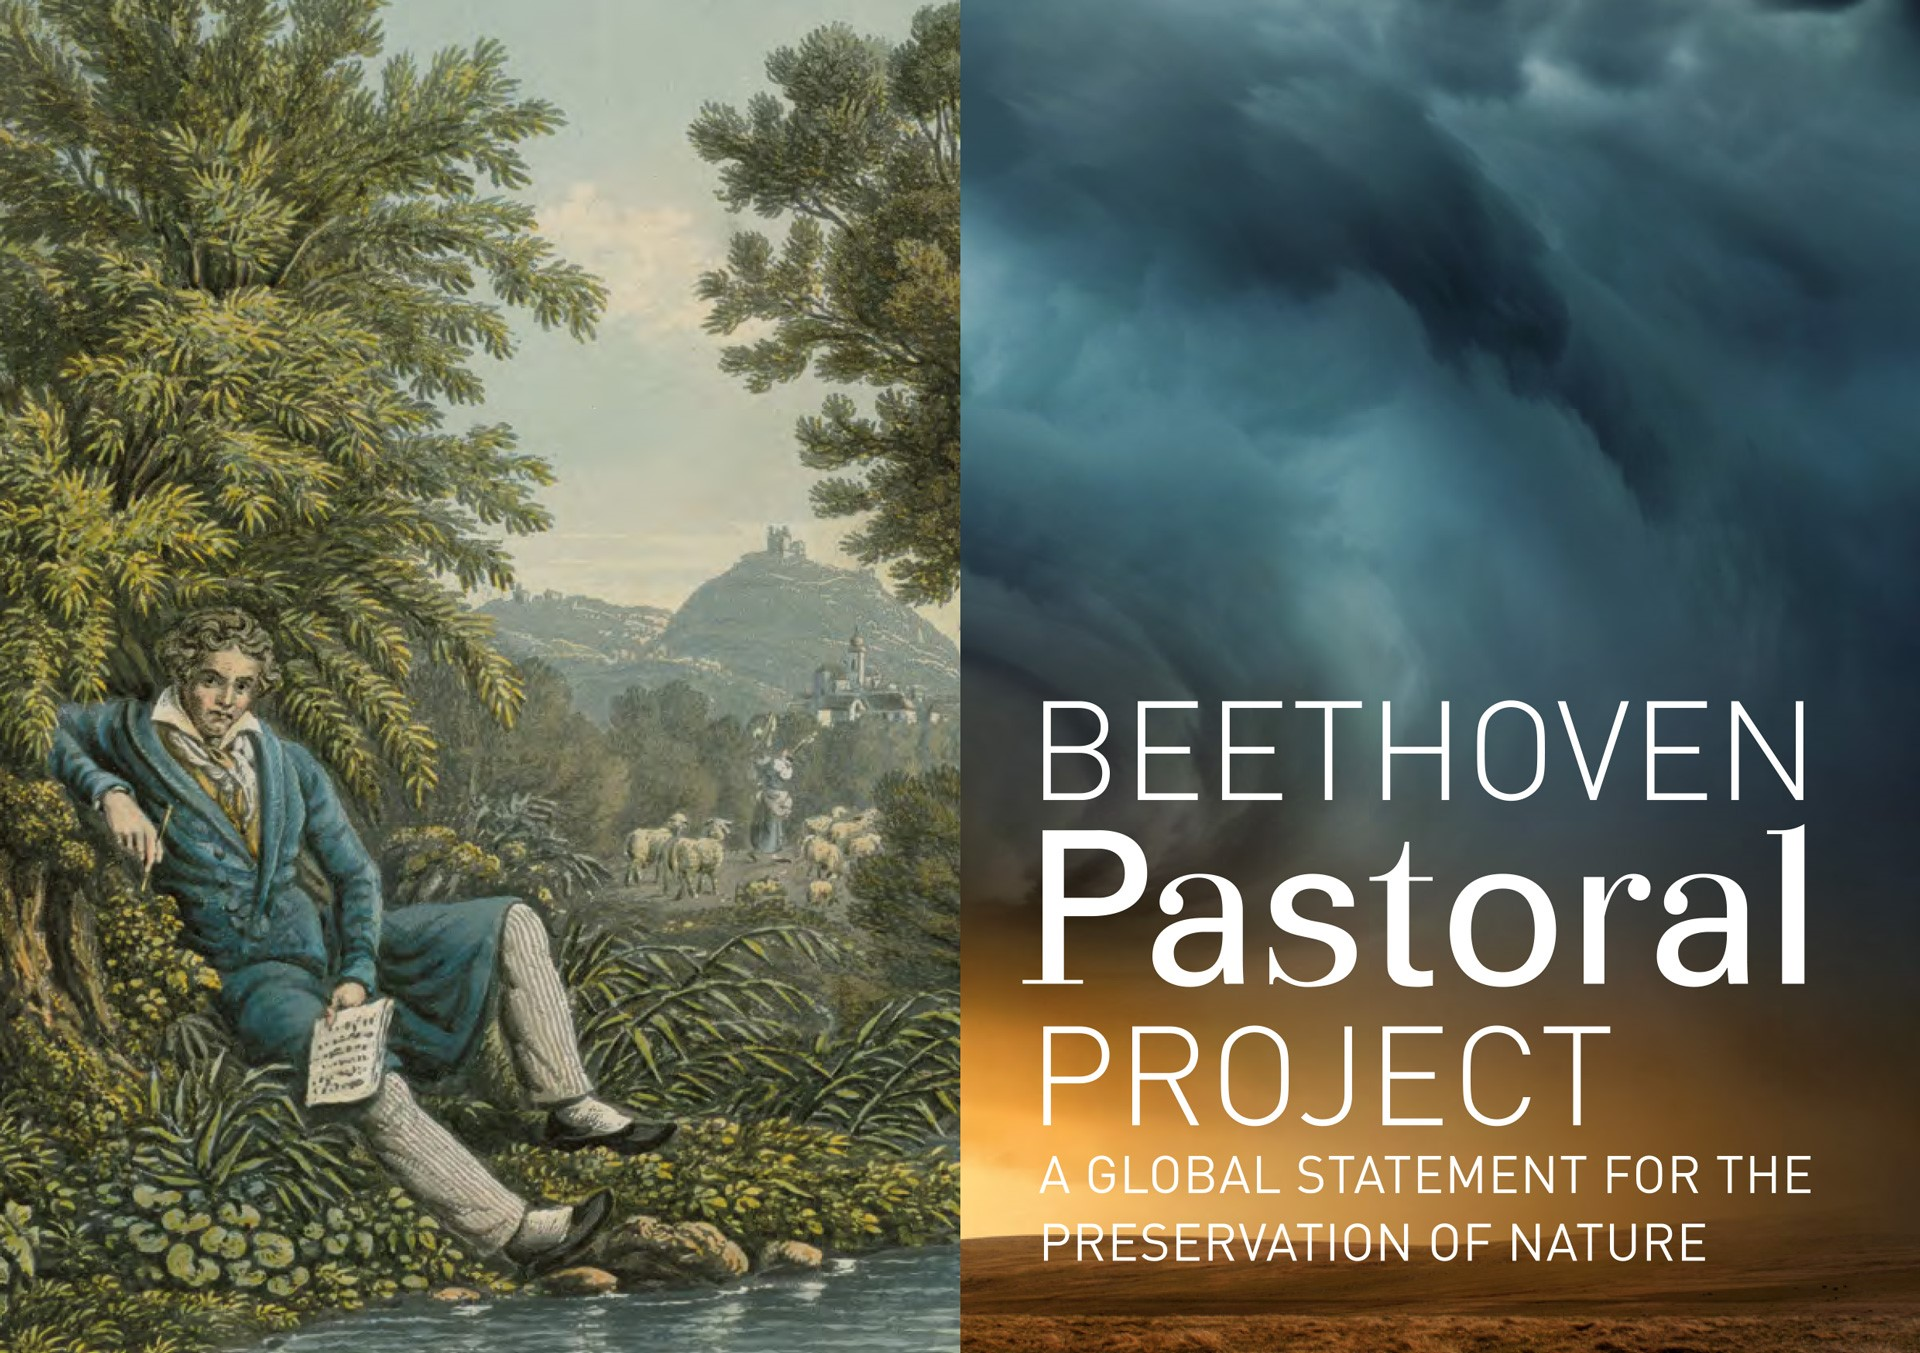 Beethoven Pastoral Project Visual